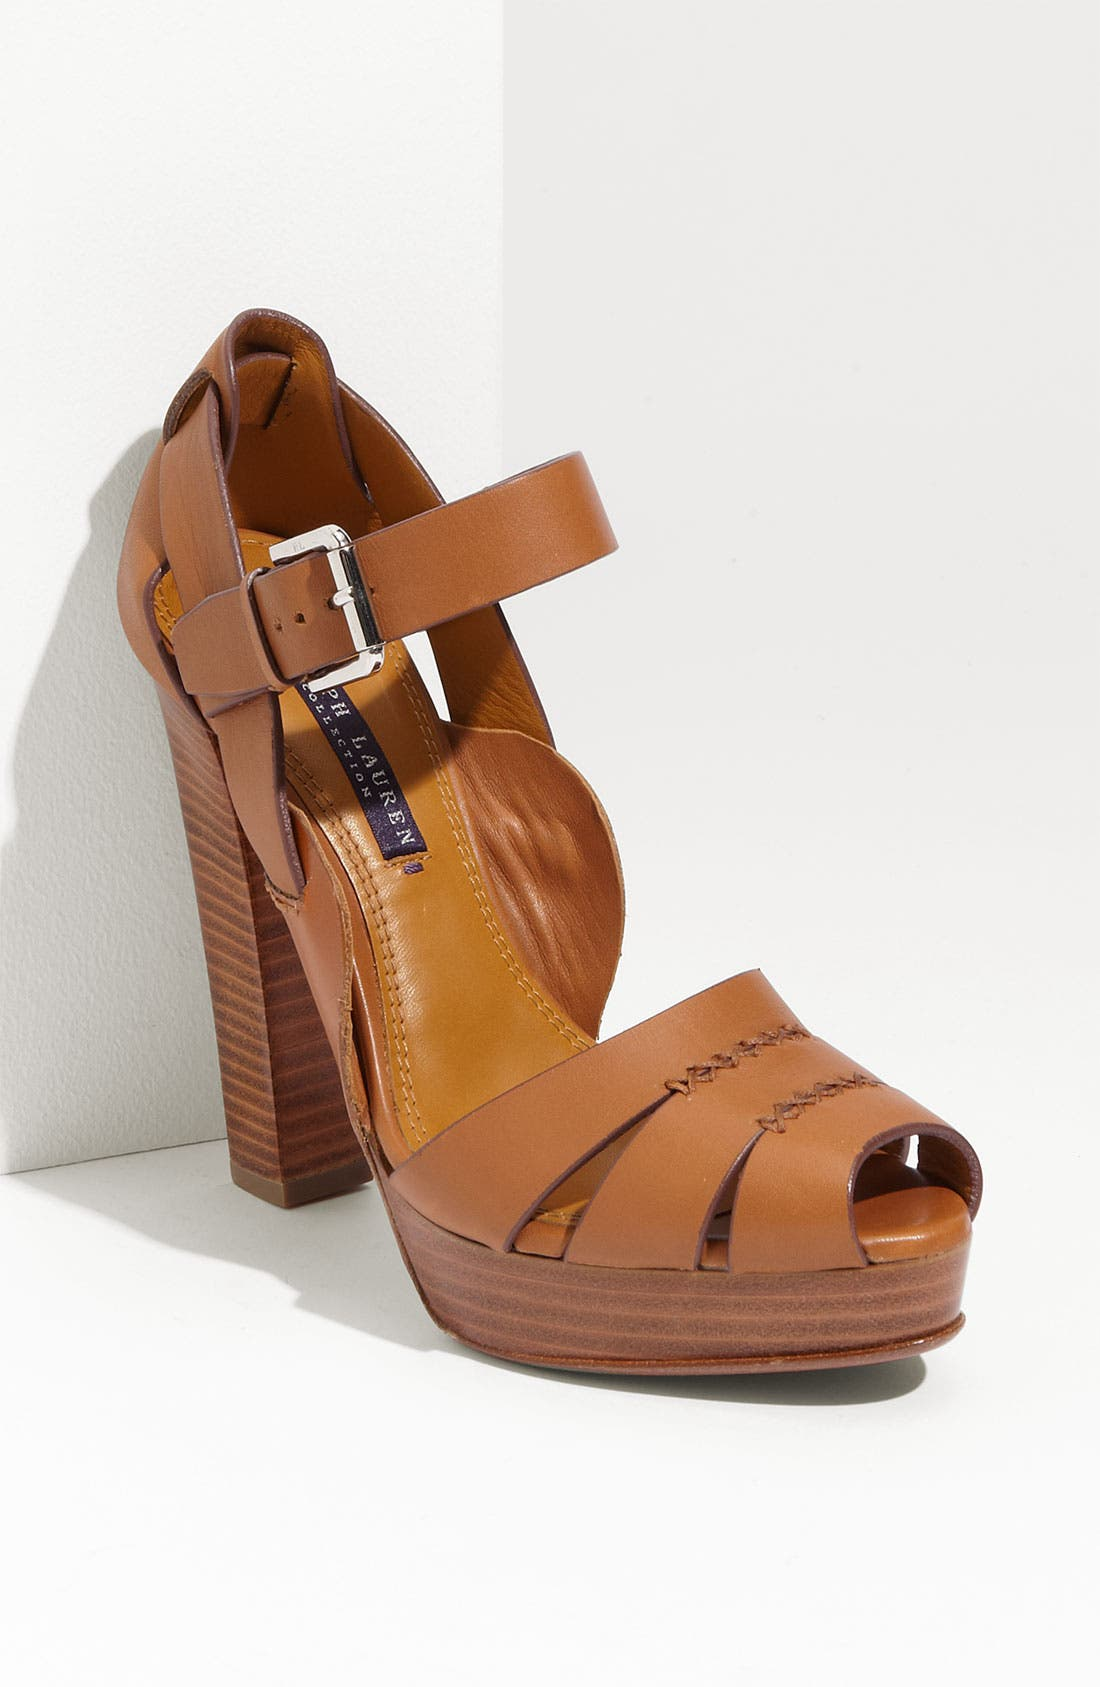 Alternate Image 1 Selected - Ralph Lauren Collection 'Kam' Sandal